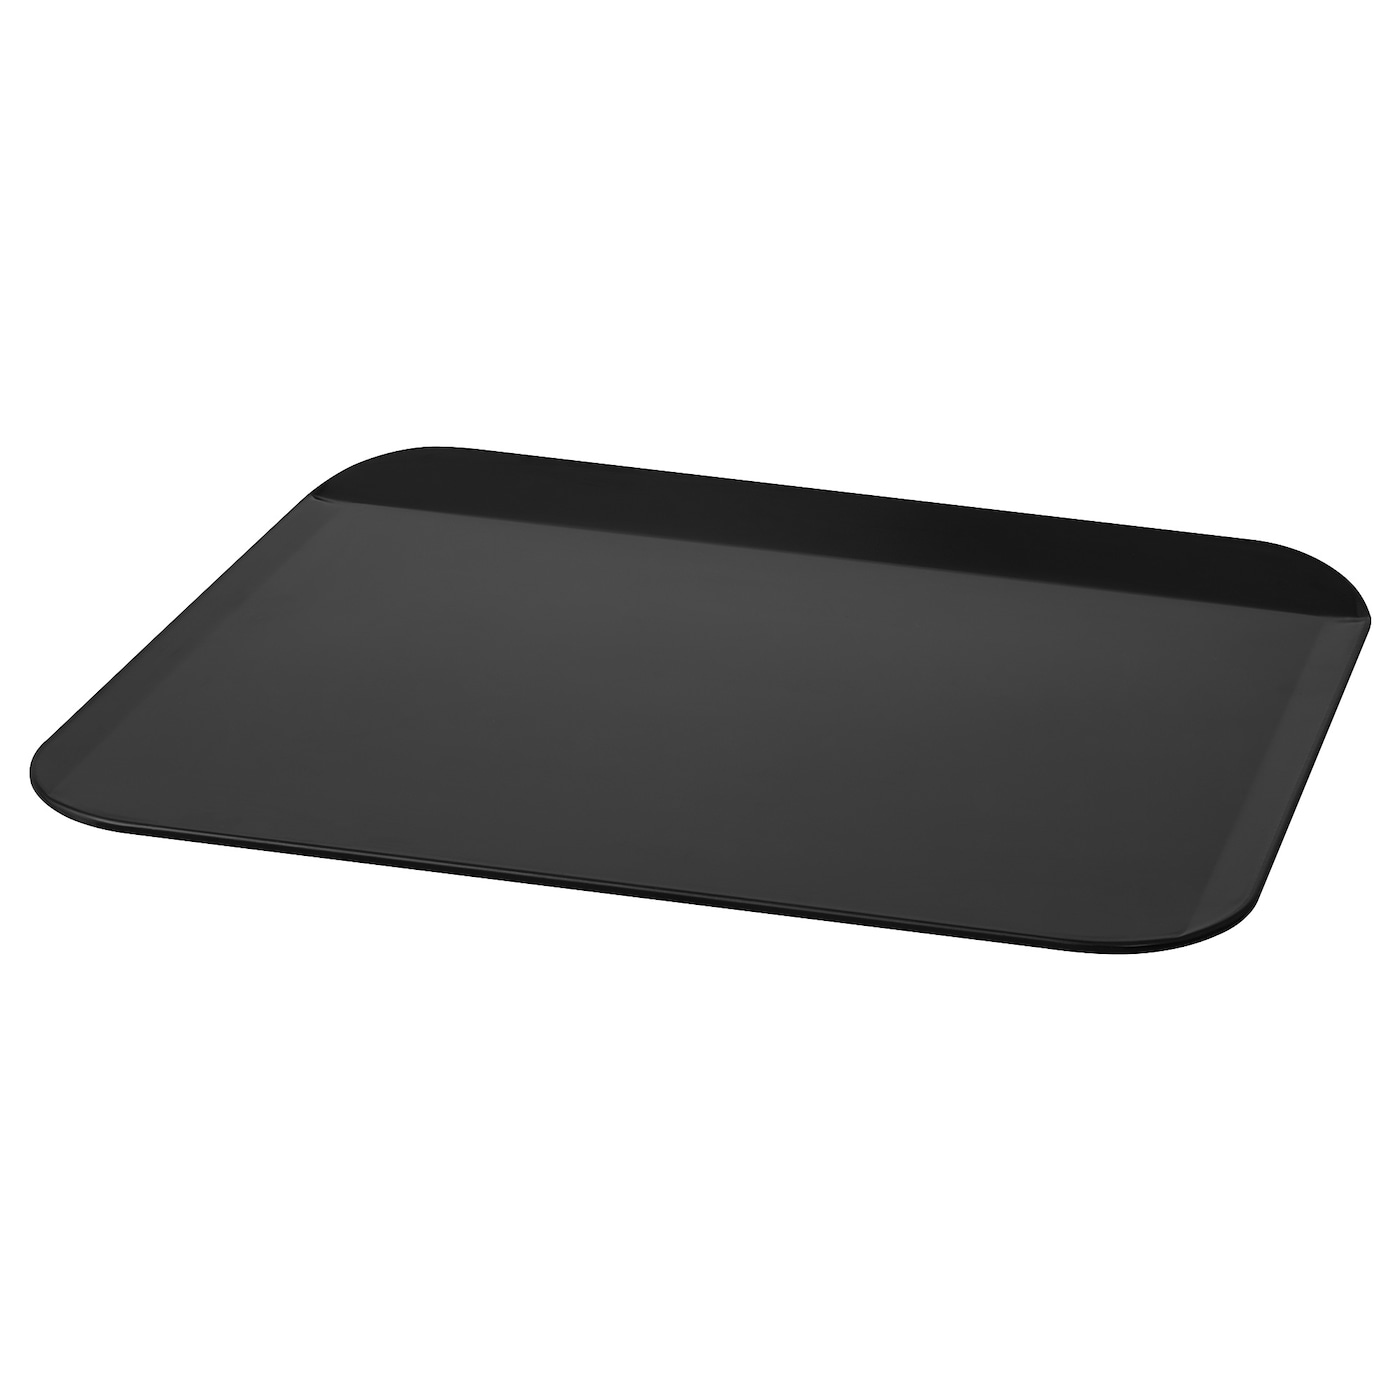 IKEA LOCKBETE baking sheet Pastry releases easily thanks to the non-stick coating.